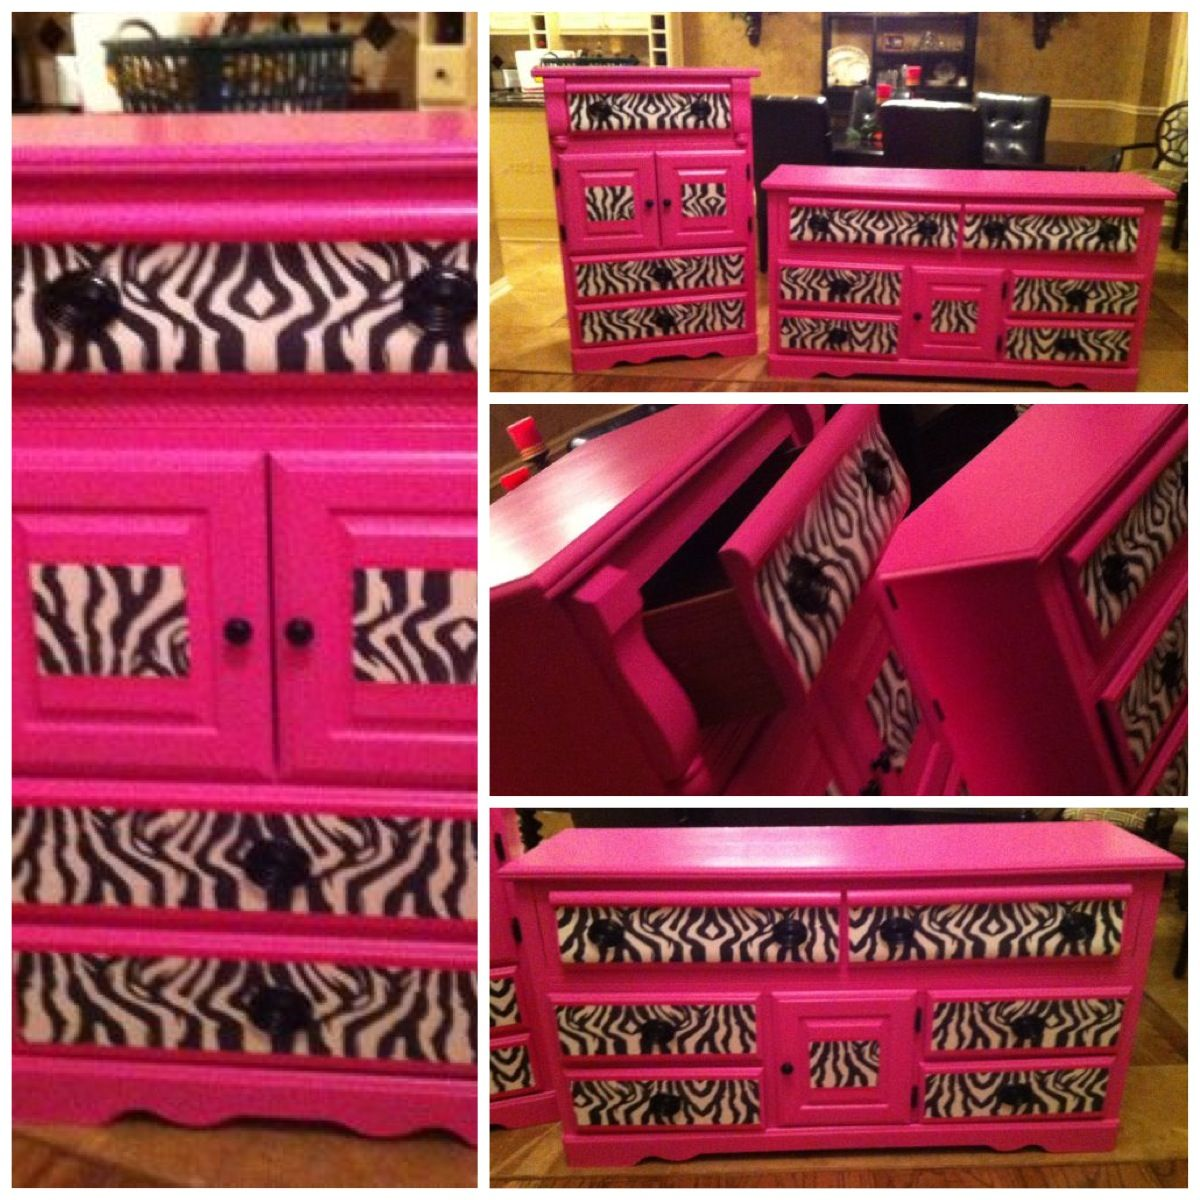 S Bedroom Set In Hot Pink Zebra How Cute My Daughters Room Is Similar To This But Has Purple And Flowera Maybe I Could Redo Hers Hmmm